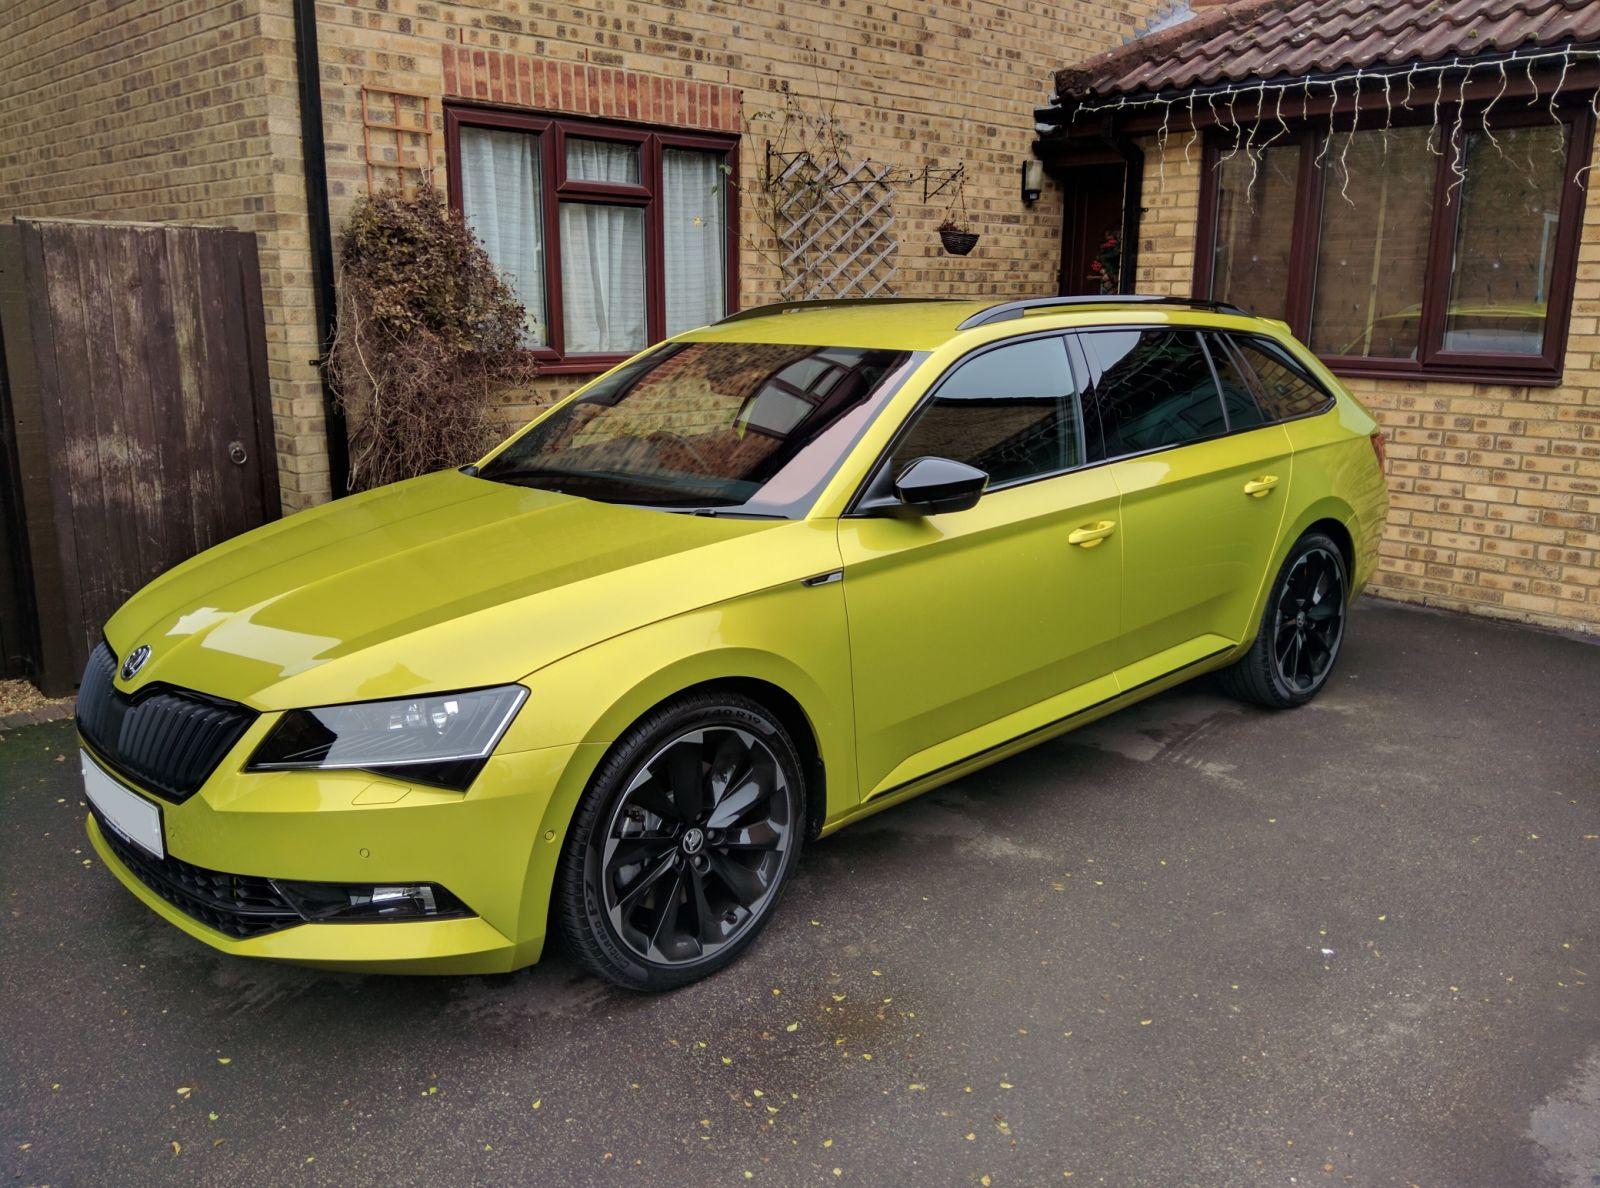 dragongreen skodasuperbsportline skoda superb sportline gallery briskoda. Black Bedroom Furniture Sets. Home Design Ideas